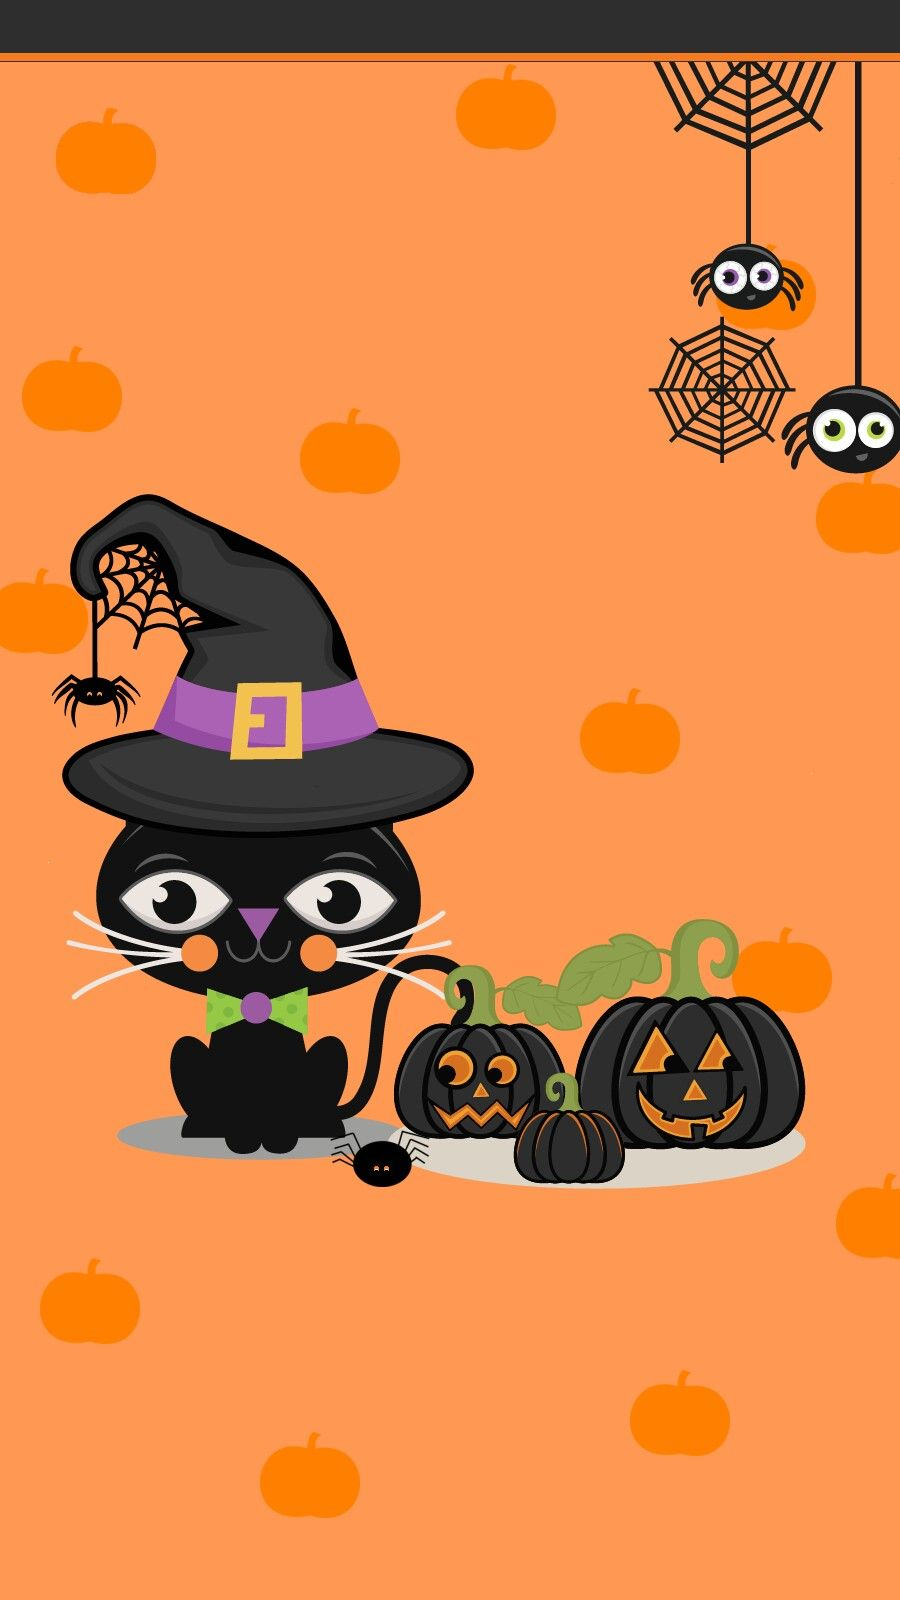 Beautiful Wallpaper Halloween Pinterest - 29081f2afbe5855ca044ae386d8e396c  Collection_93628.jpg